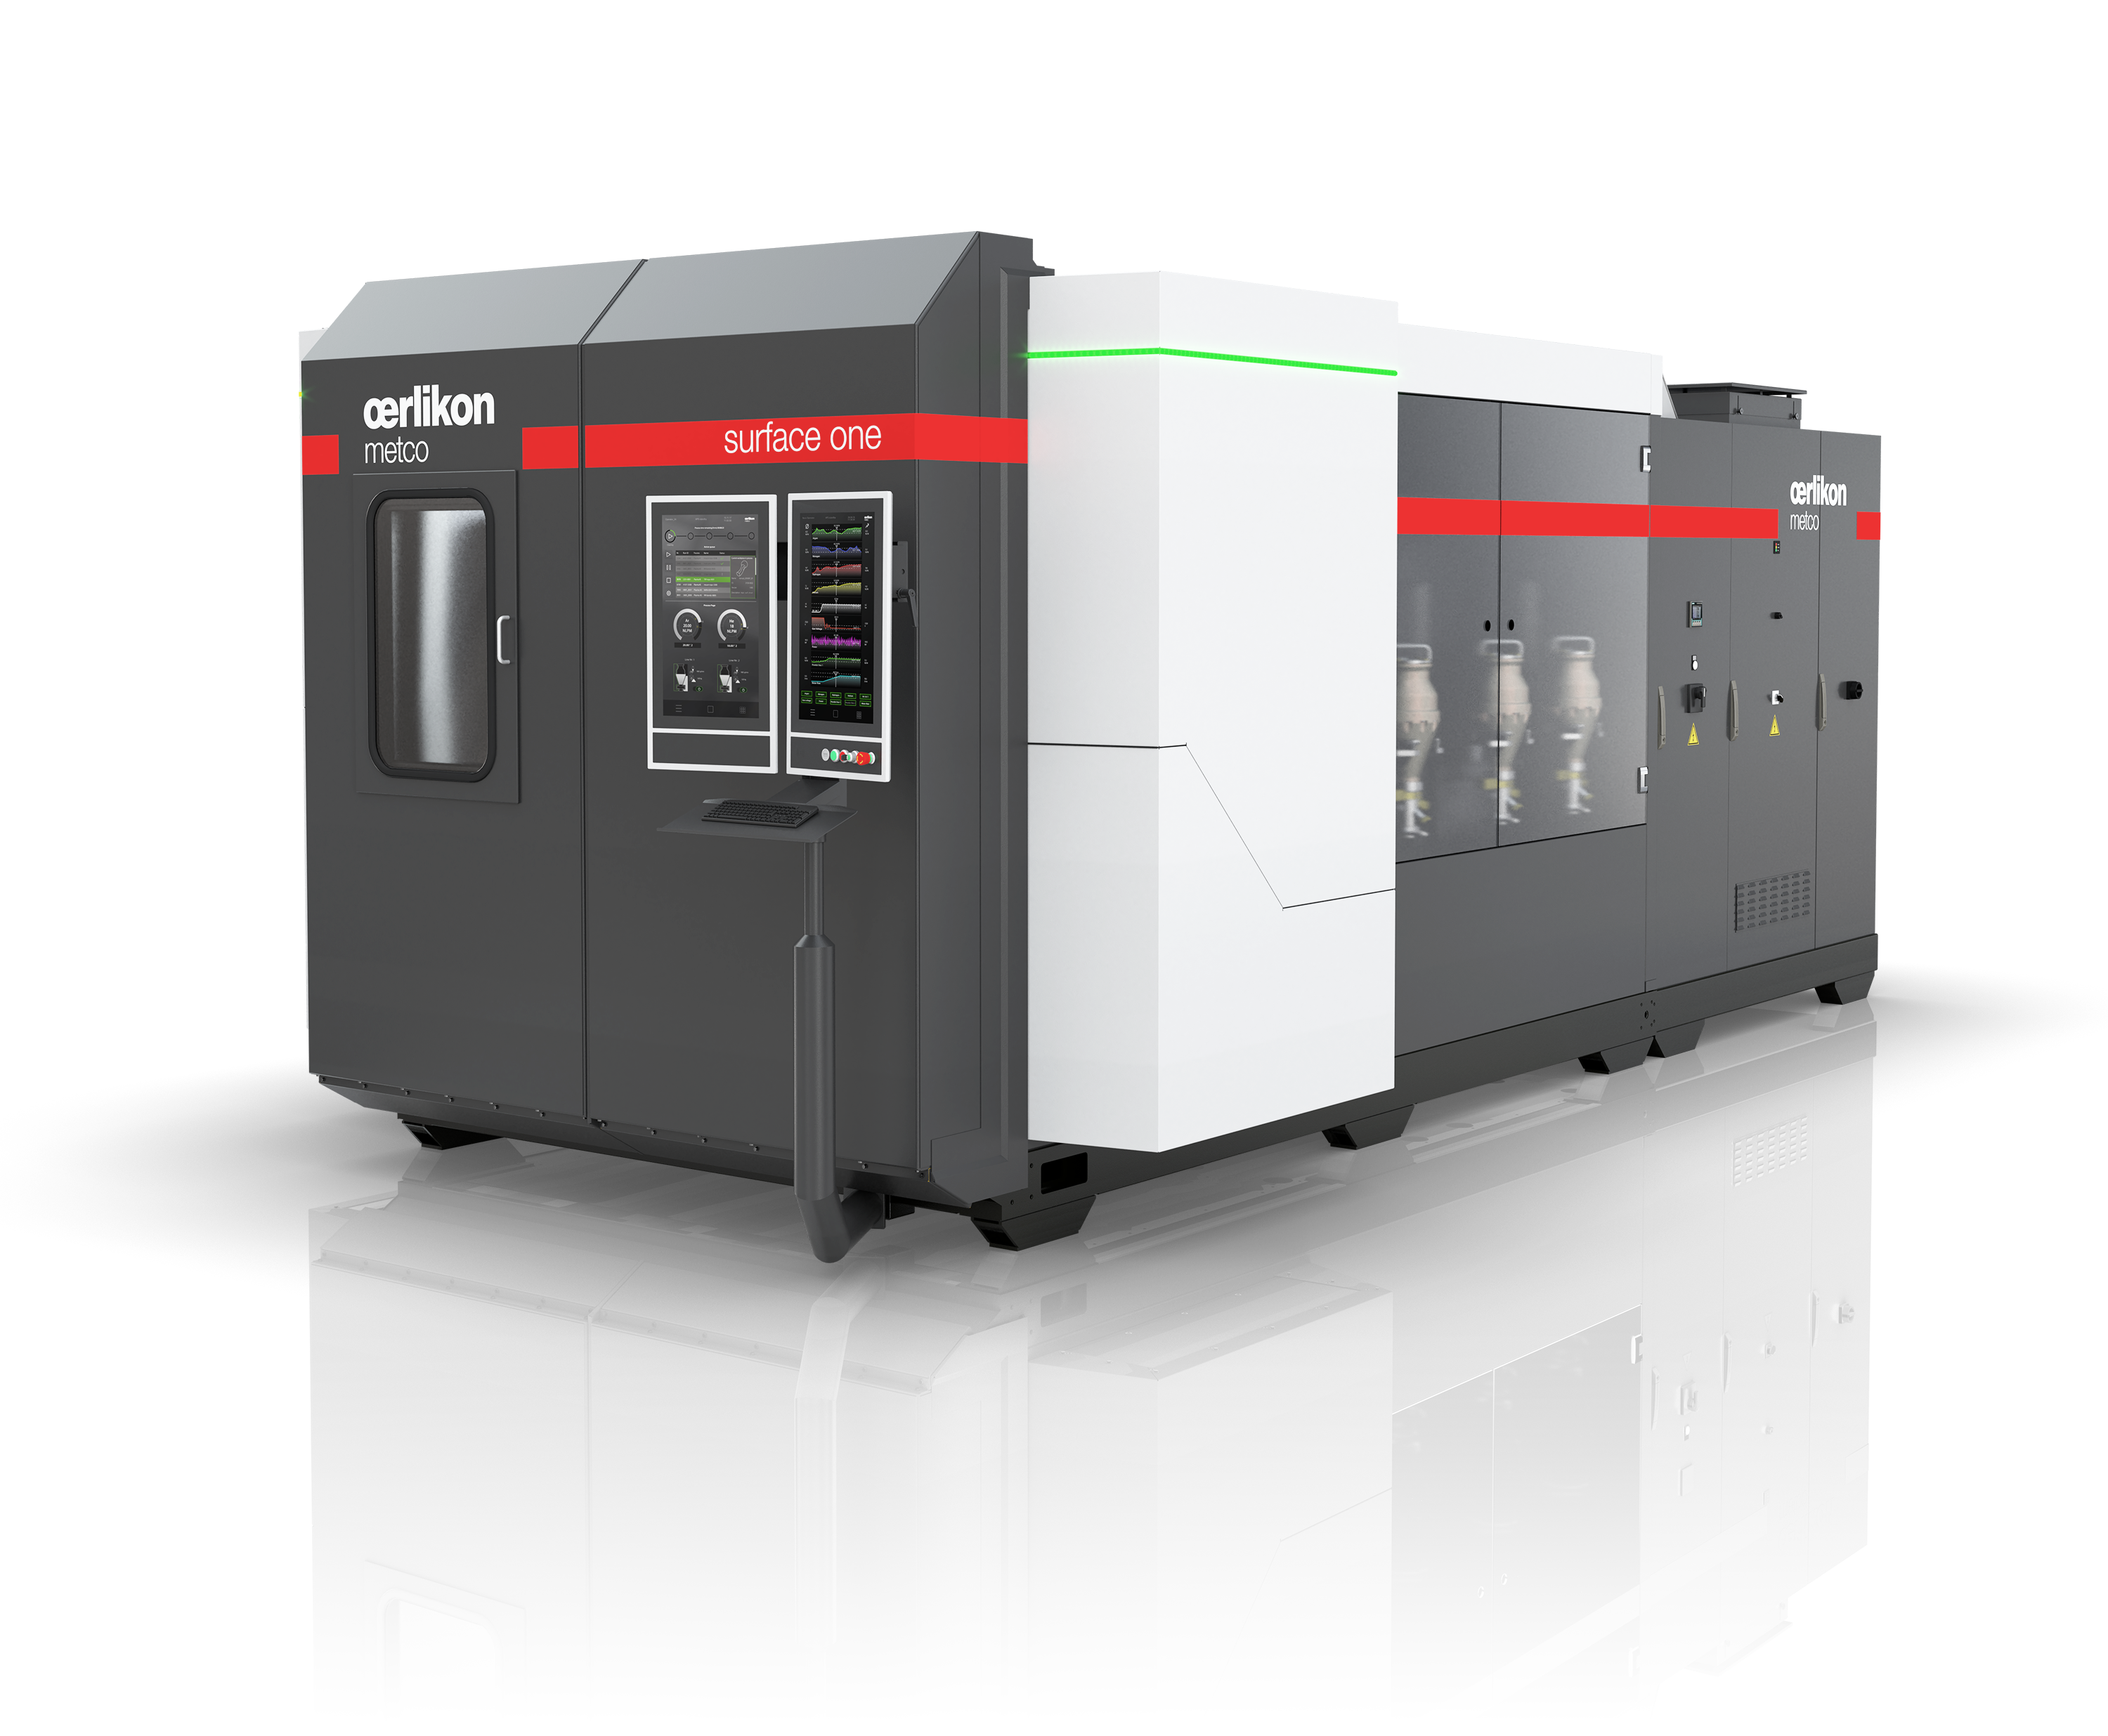 Oerlikon Metco Wins International Design Awards with Innovative Thermal Spray Coating Machine